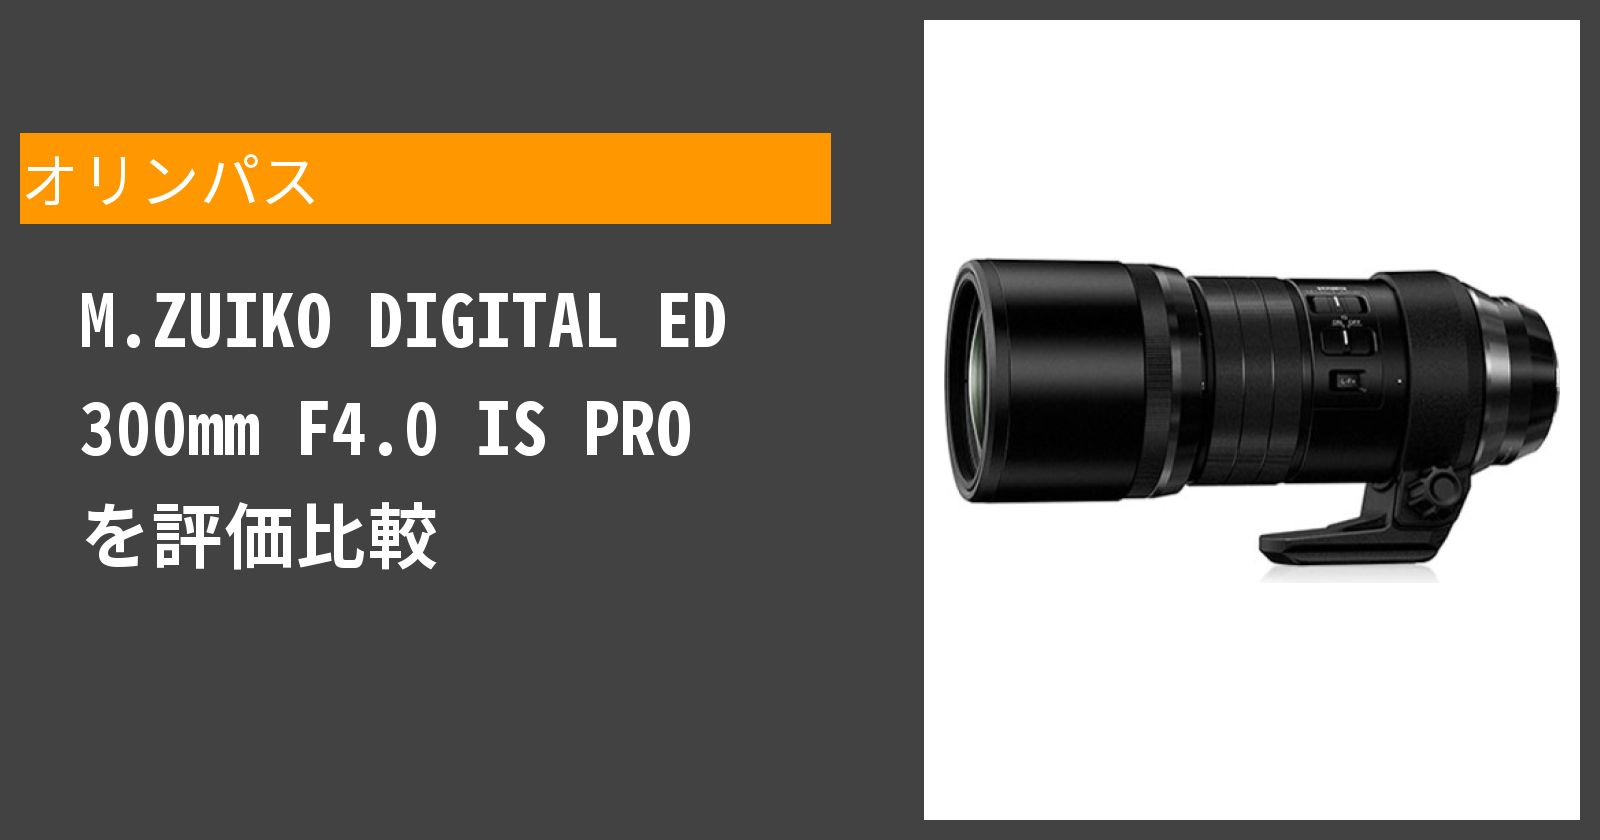 M.ZUIKO DIGITAL ED 300mm F4.0 IS PROを徹底評価